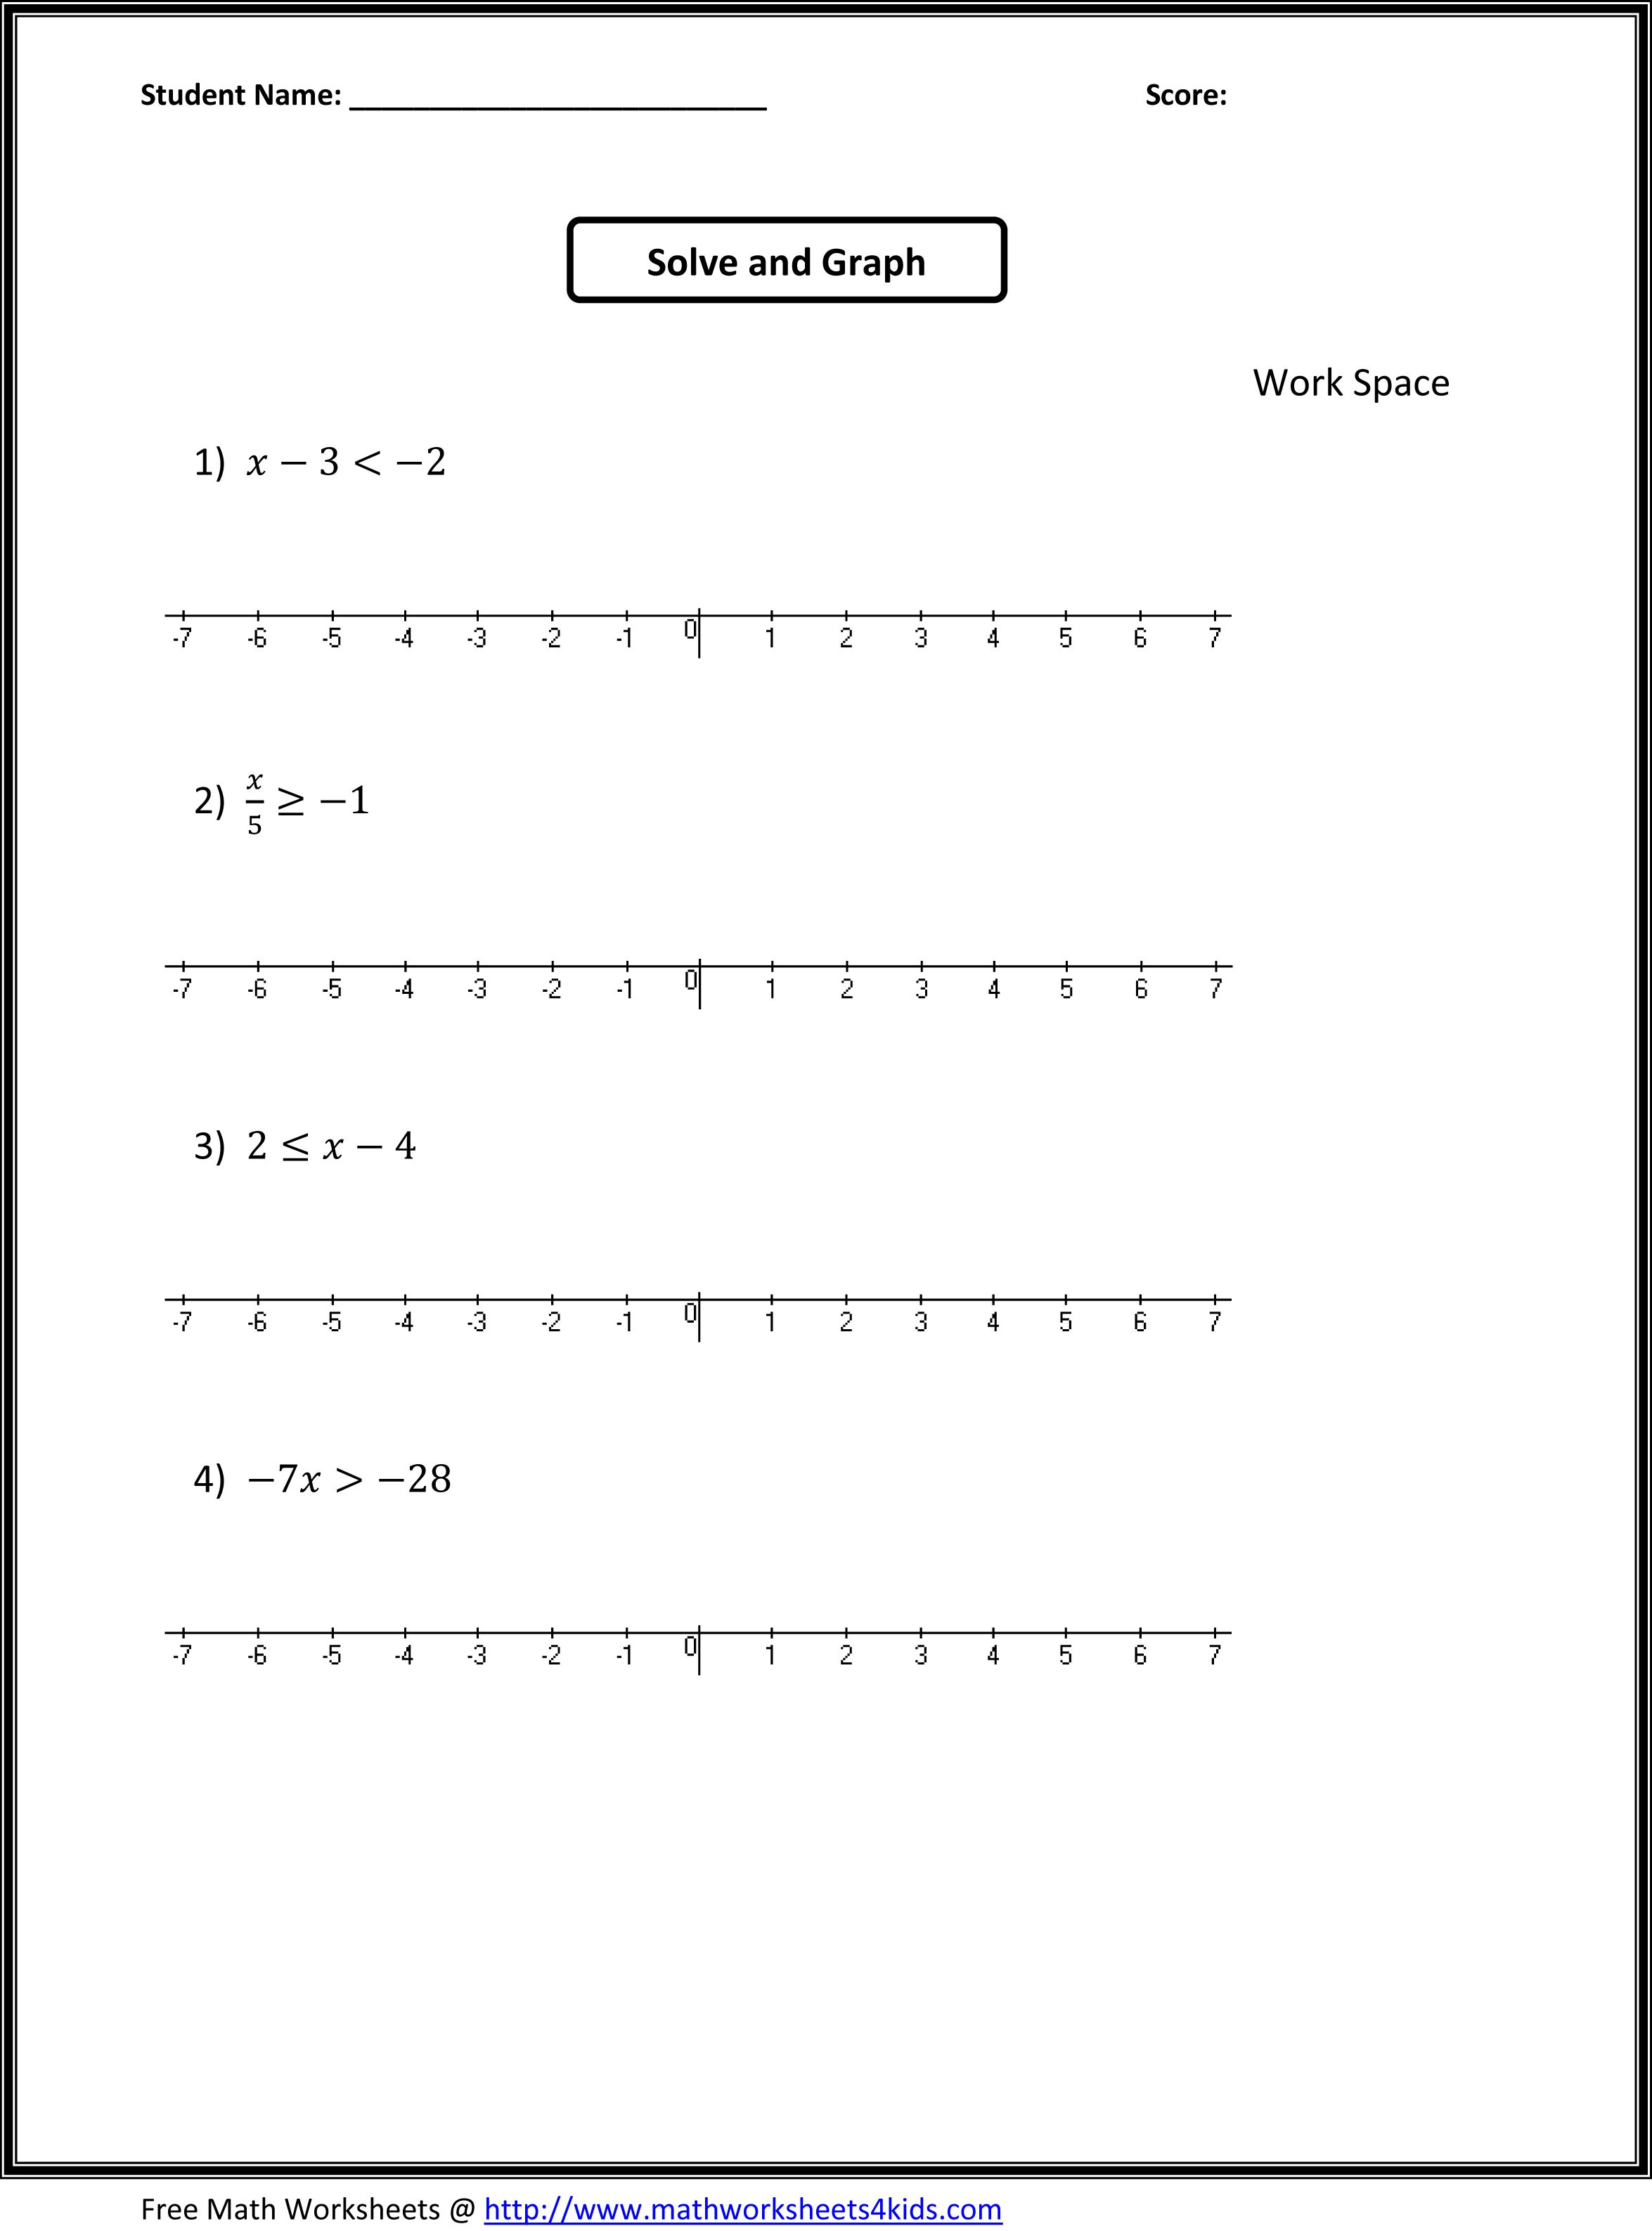 Printables Math Worksheet 7th Grade 7th grade math worksheets value absolute algebra worksheets